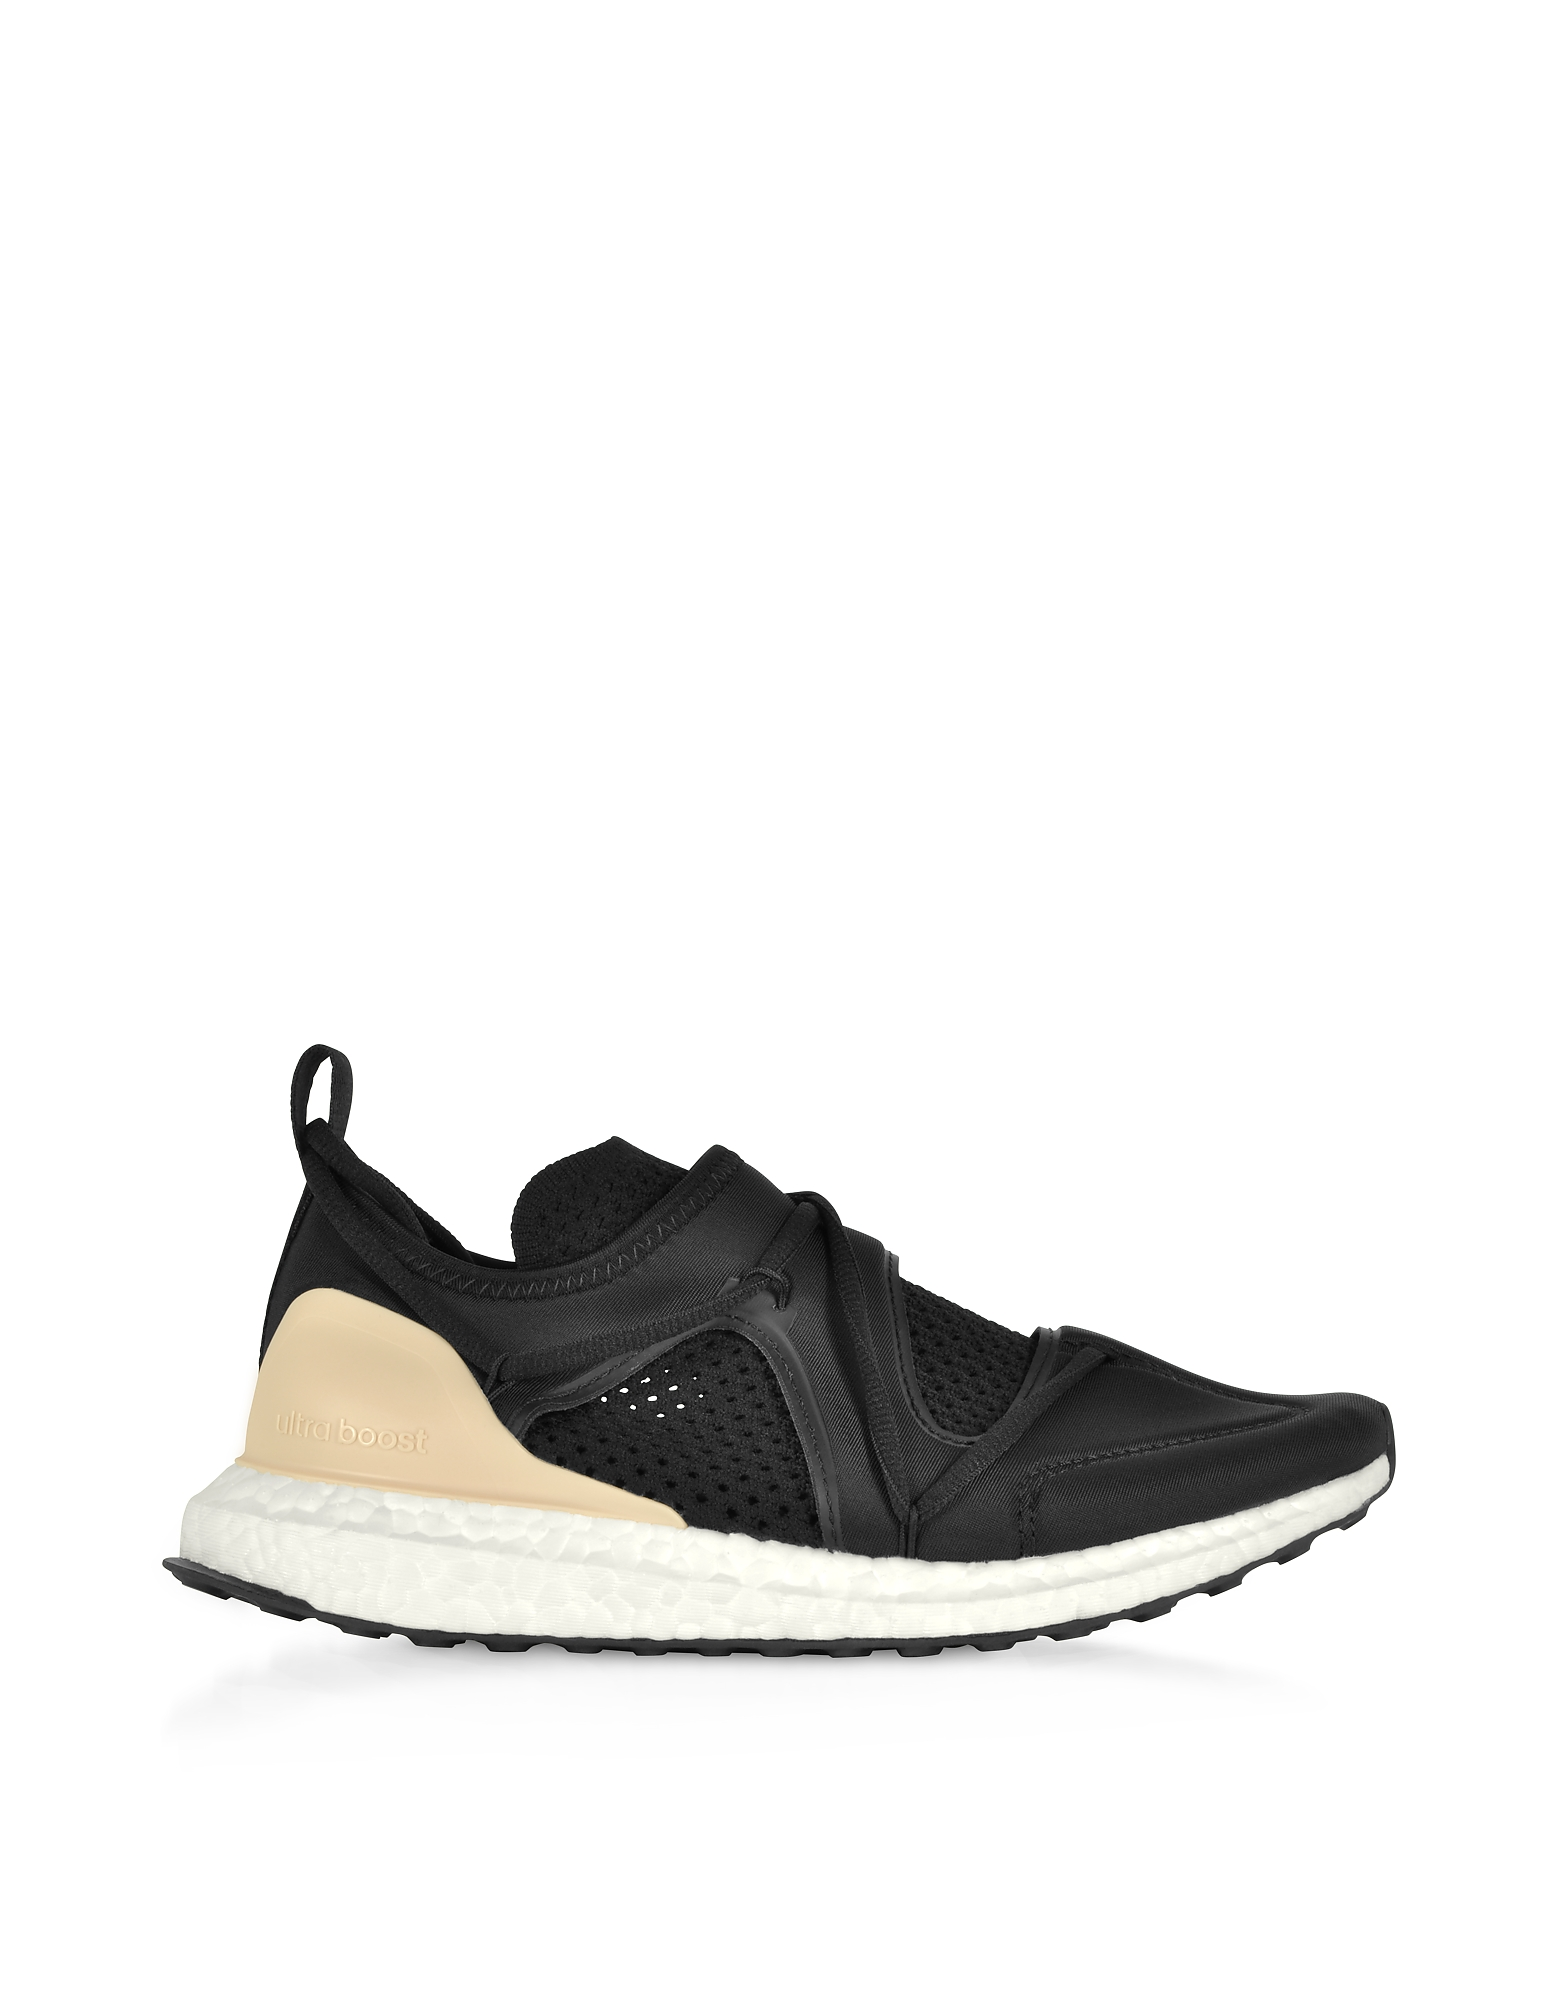 Ultraboost T Black Nylon Running Sneakers